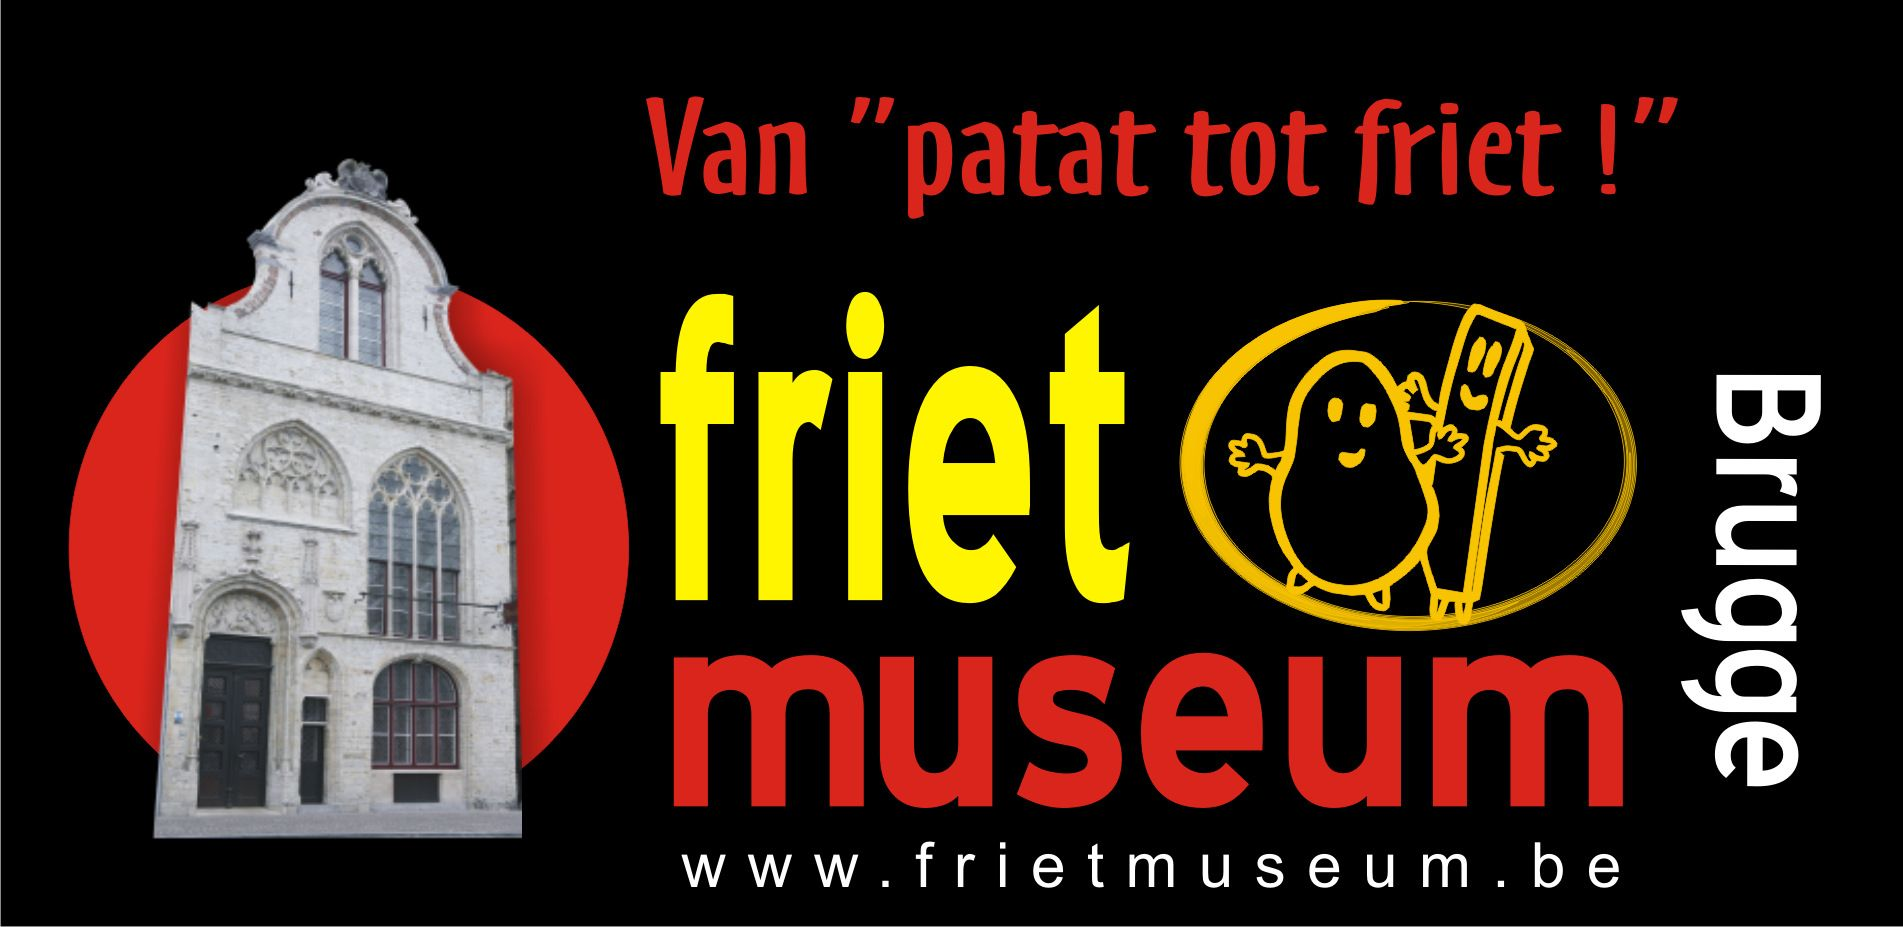 http://www.cartoon-productions.be/wp-content/uploads/2010/11/Frietmuseum-Brugge.jpg